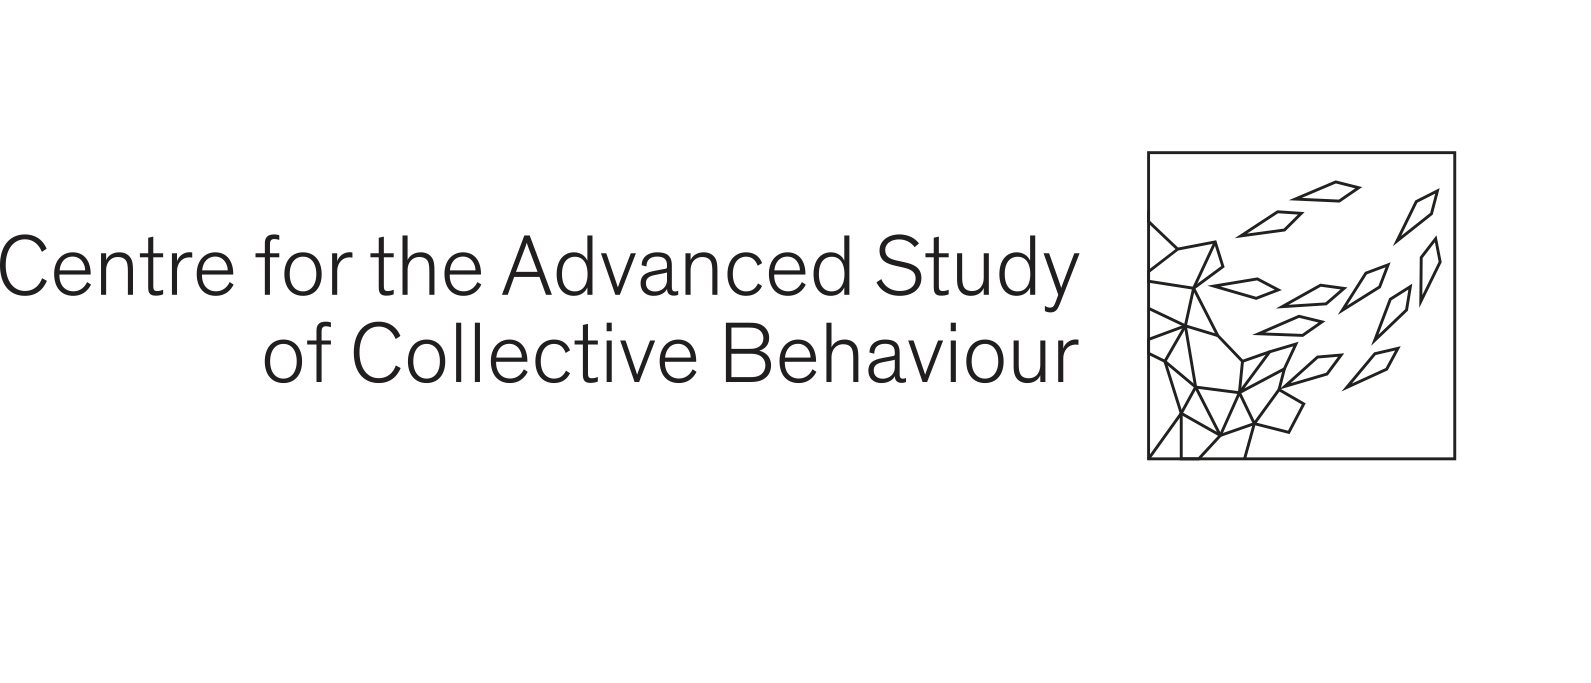 Center for the advanced study of collective behavior